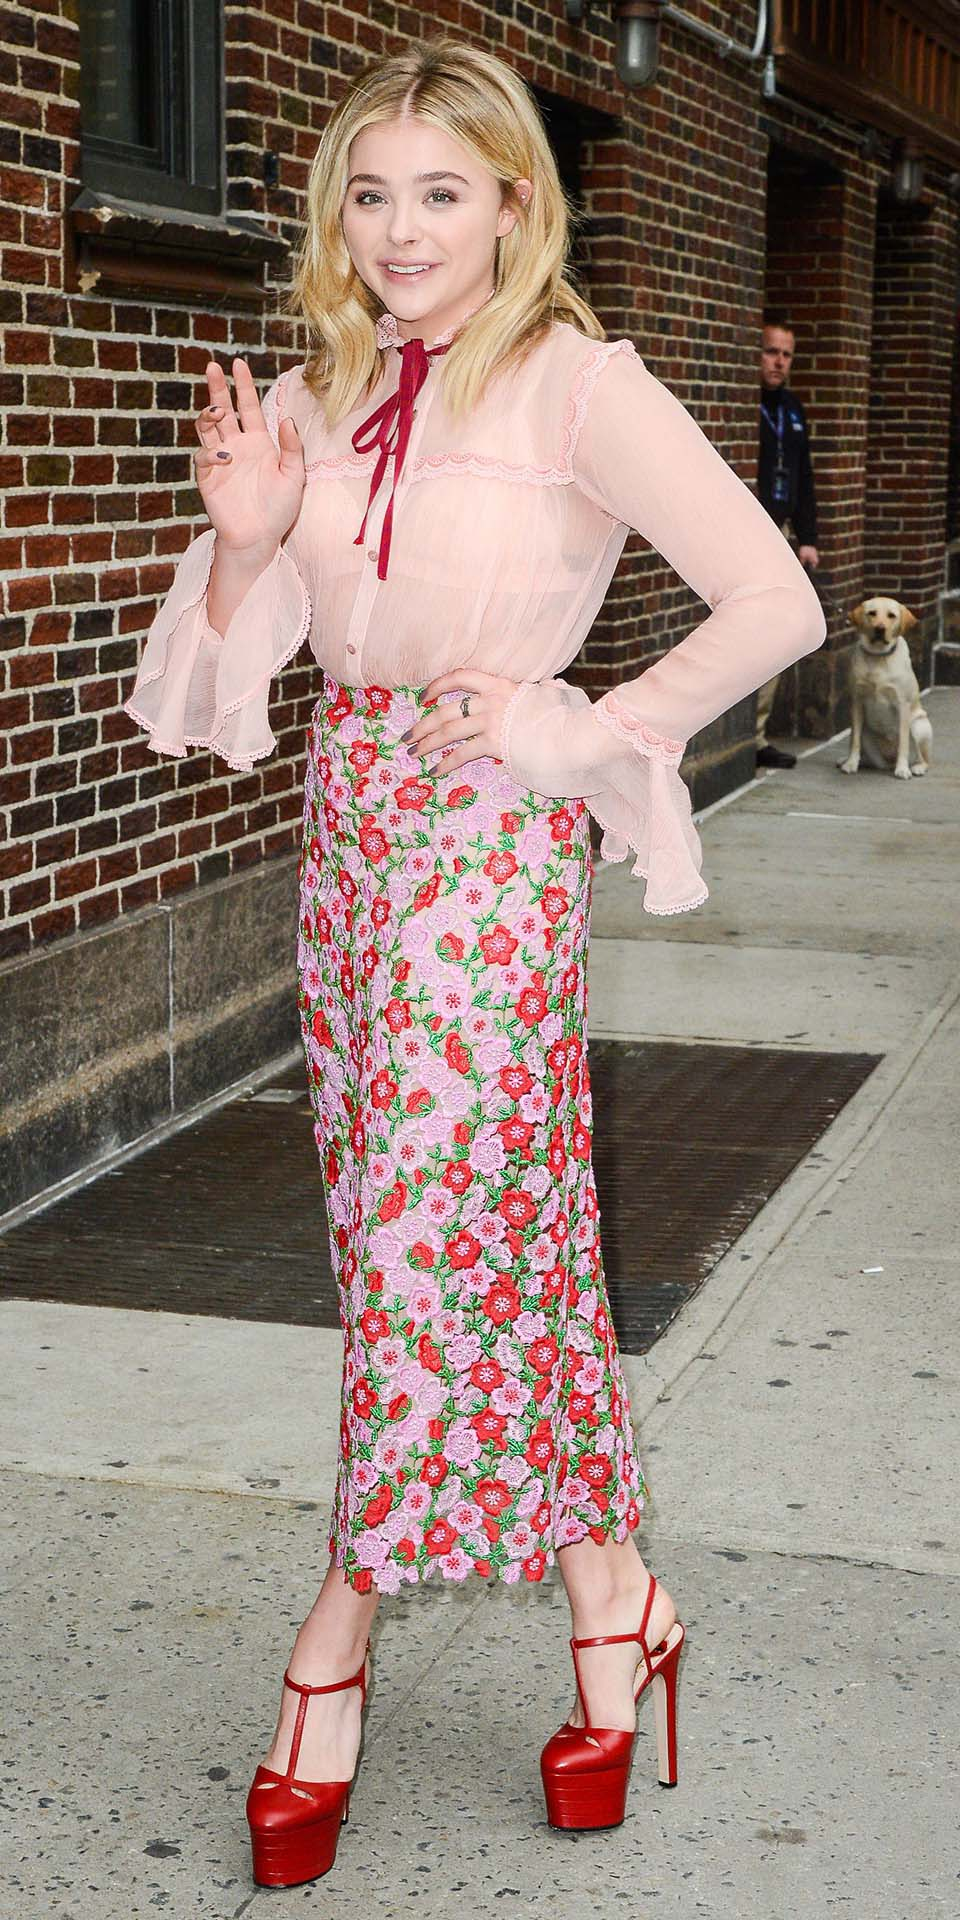 pink-light-midi-skirt-pink-light-top-blouse-peasant-floral-print-red-shoe-pumps-spring-summer-blonde-dinner.jpg